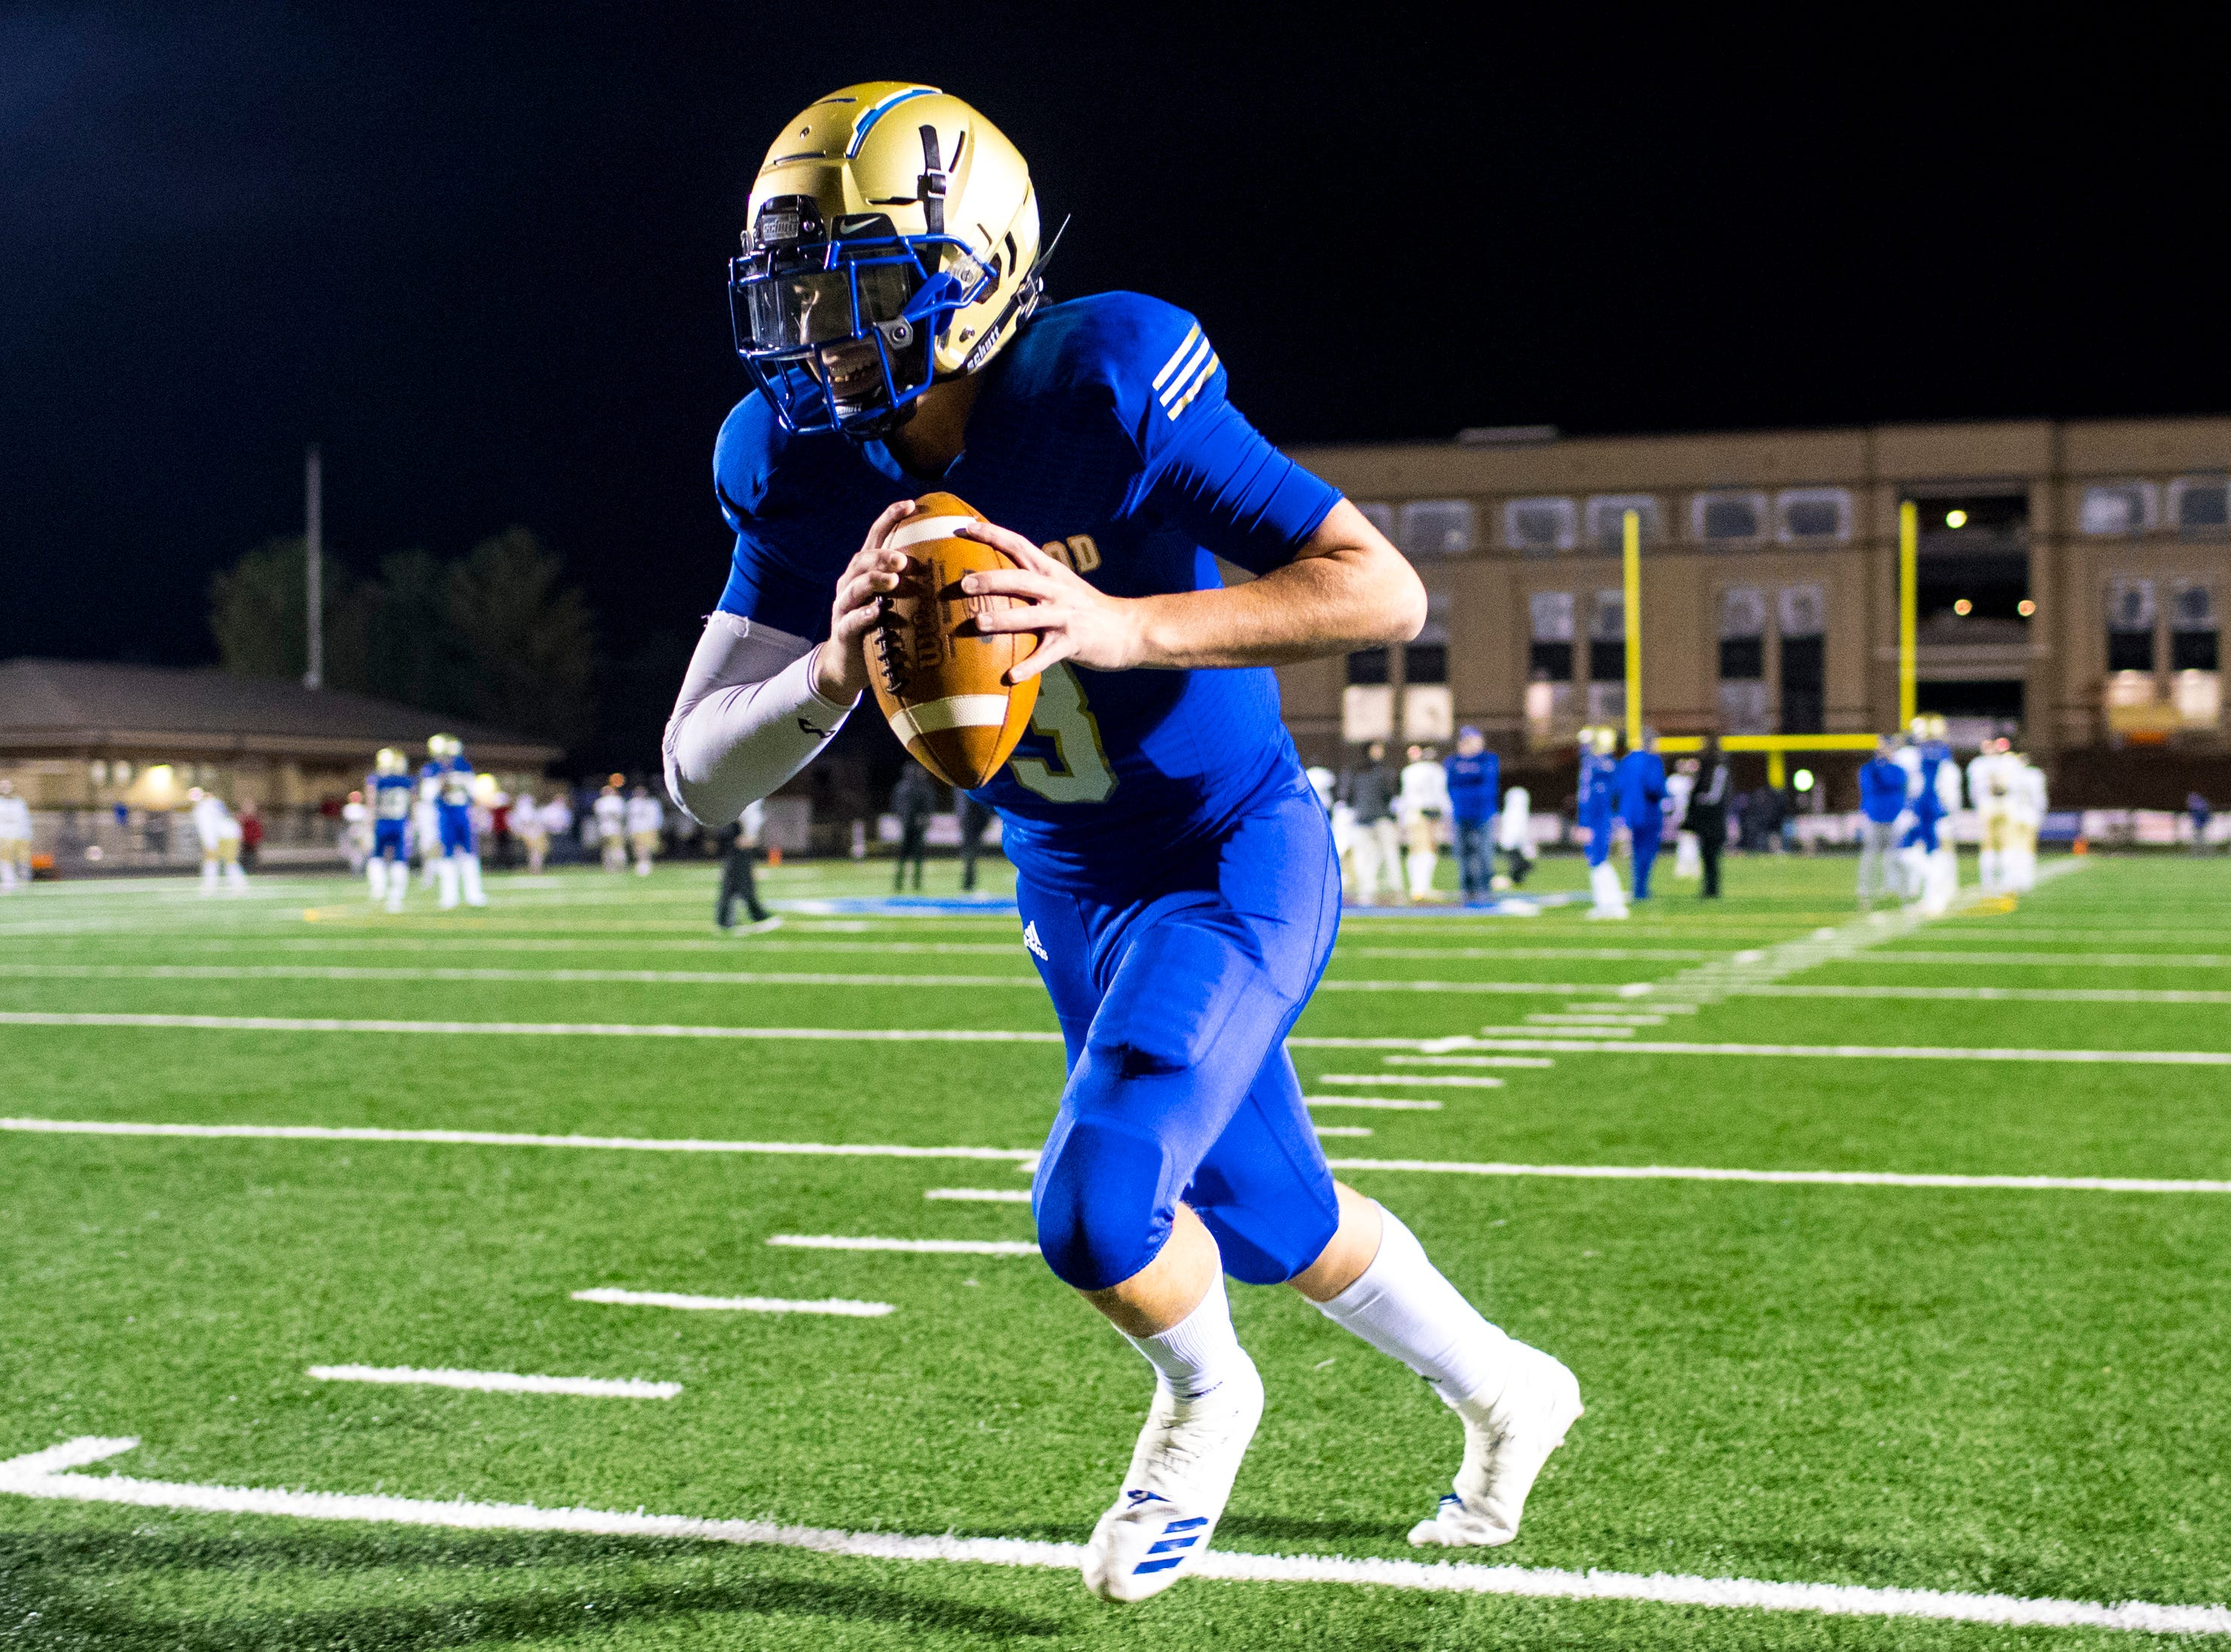 Brentwood's Cade Granzow (3) warms up before Brentwood's game against Ravenwood at Brentwood High School in Brentwood on Friday, Nov. 16, 2018.